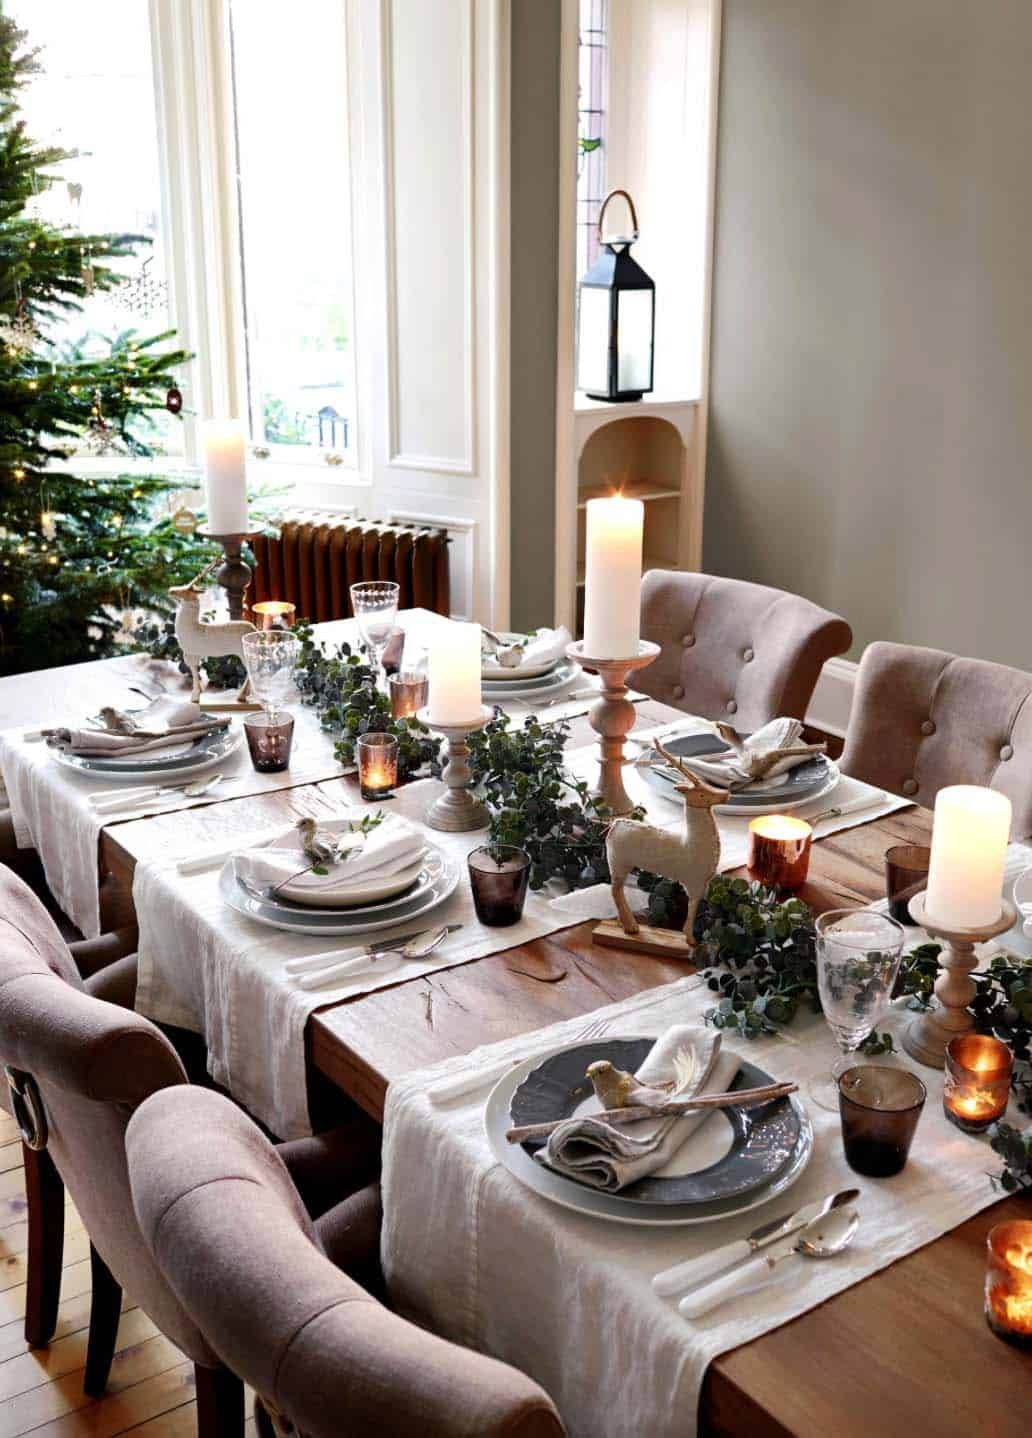 30 Dining Table Centerpiece Ideas A Guide To Decorate Dining Table Diningtable Center Christmas Dining Table Christmas Dinner Table Christmas Dining Room